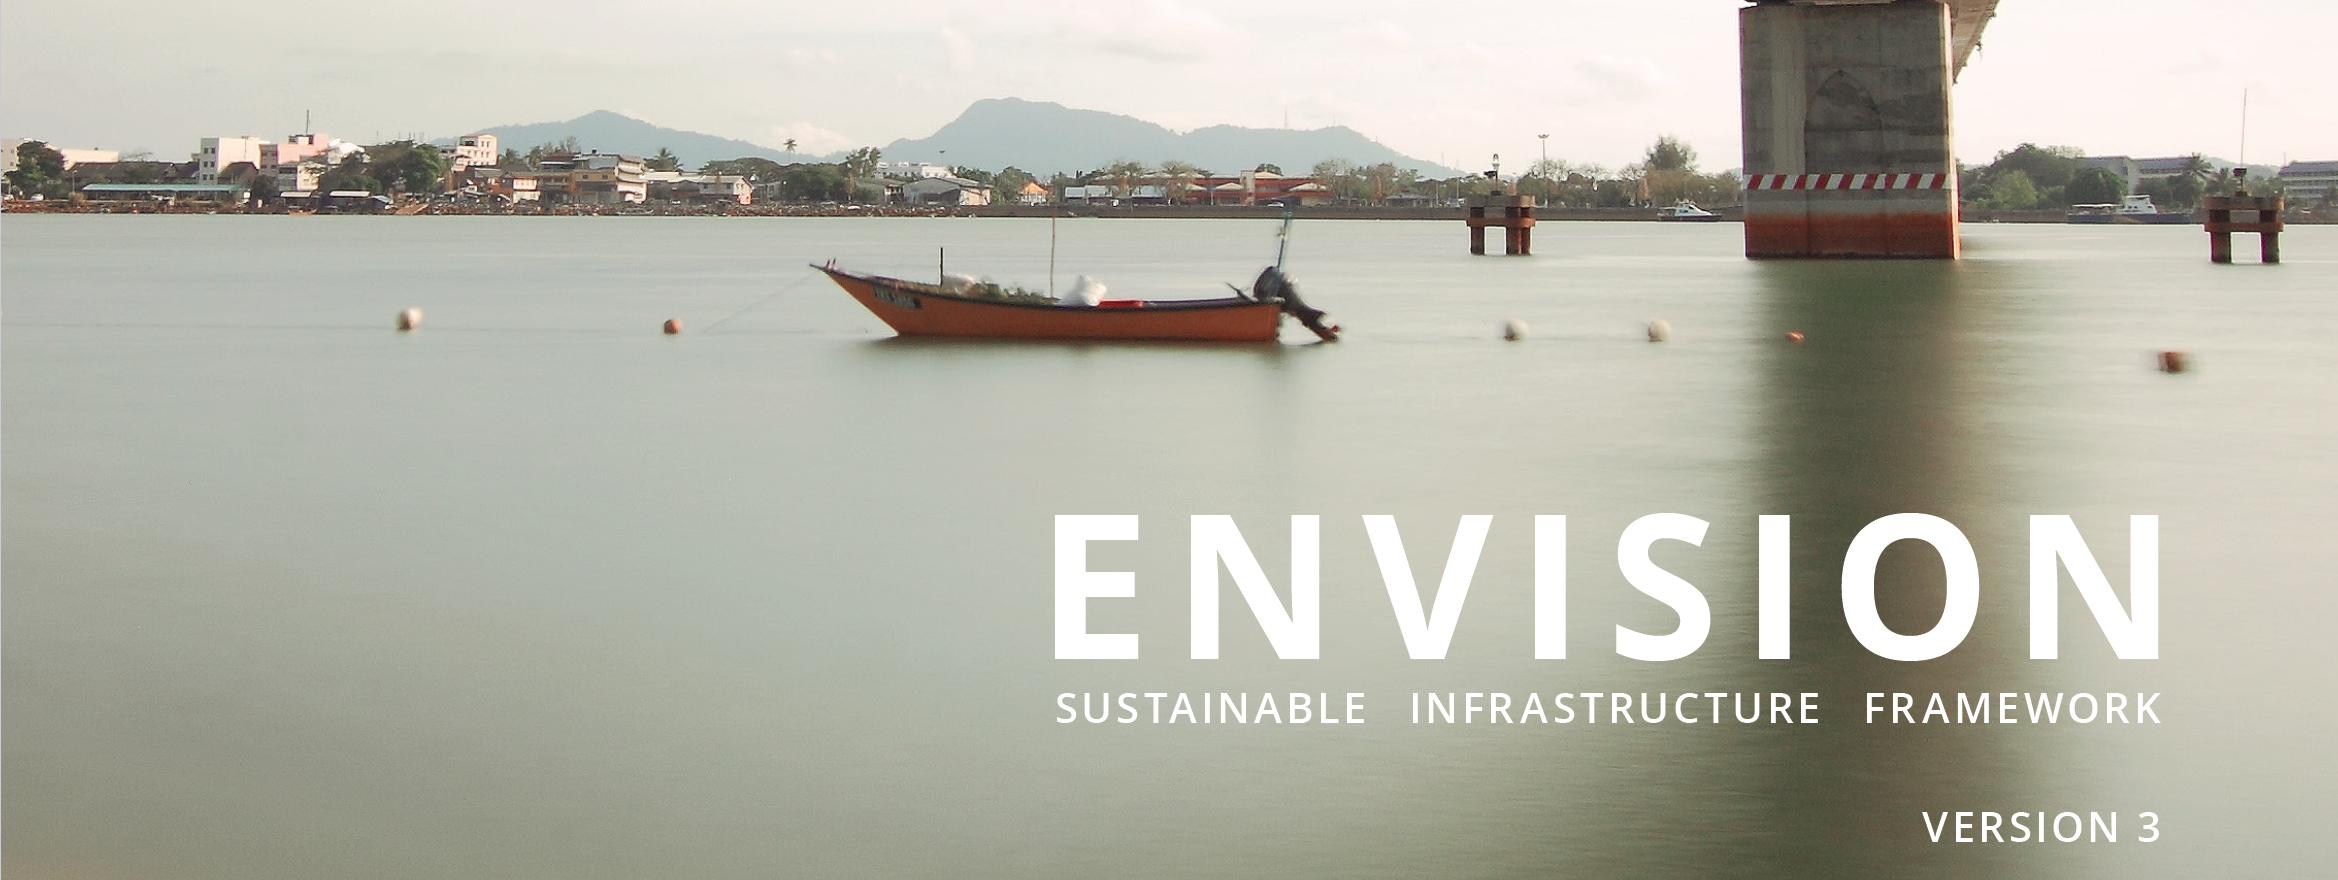 Envision V3 Release Institute For Sustainable Infrastructure